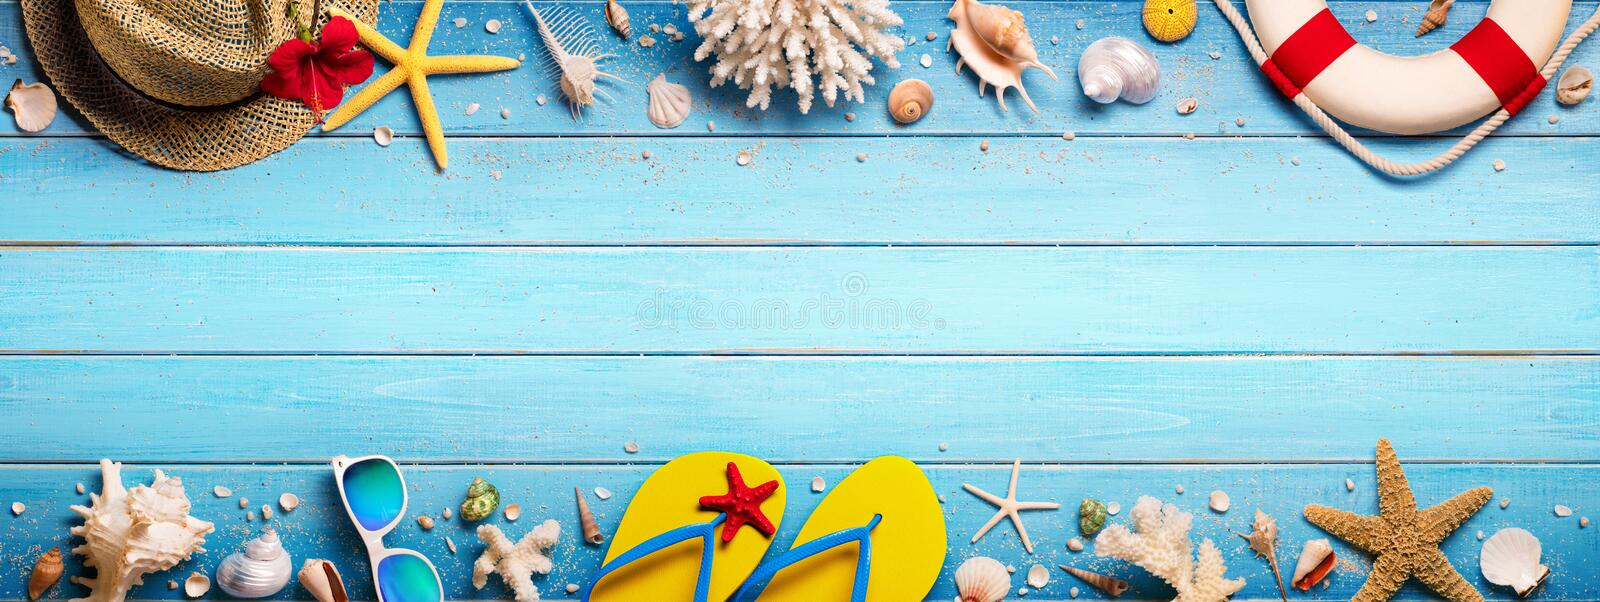 Beach Accessories On Blue Plank - Summer Holiday stock photography